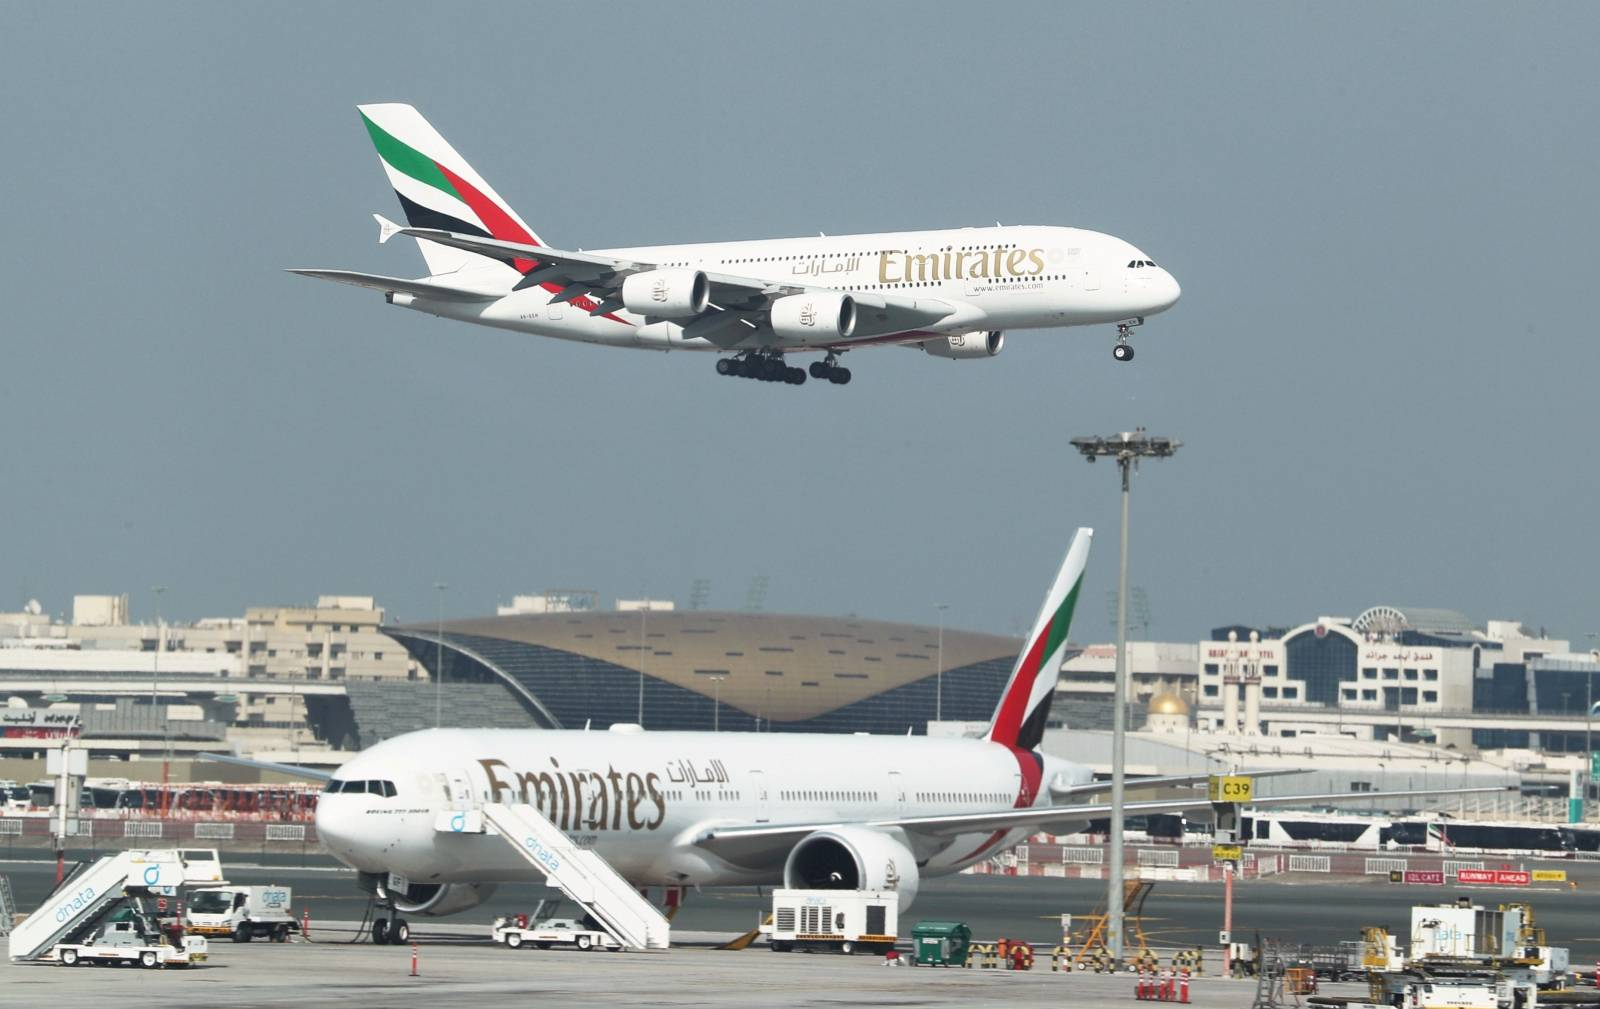 FILE PHOTO: Emirates Airlines Airbus A380 plane approaches for landing at Dubai Airports in Dubai